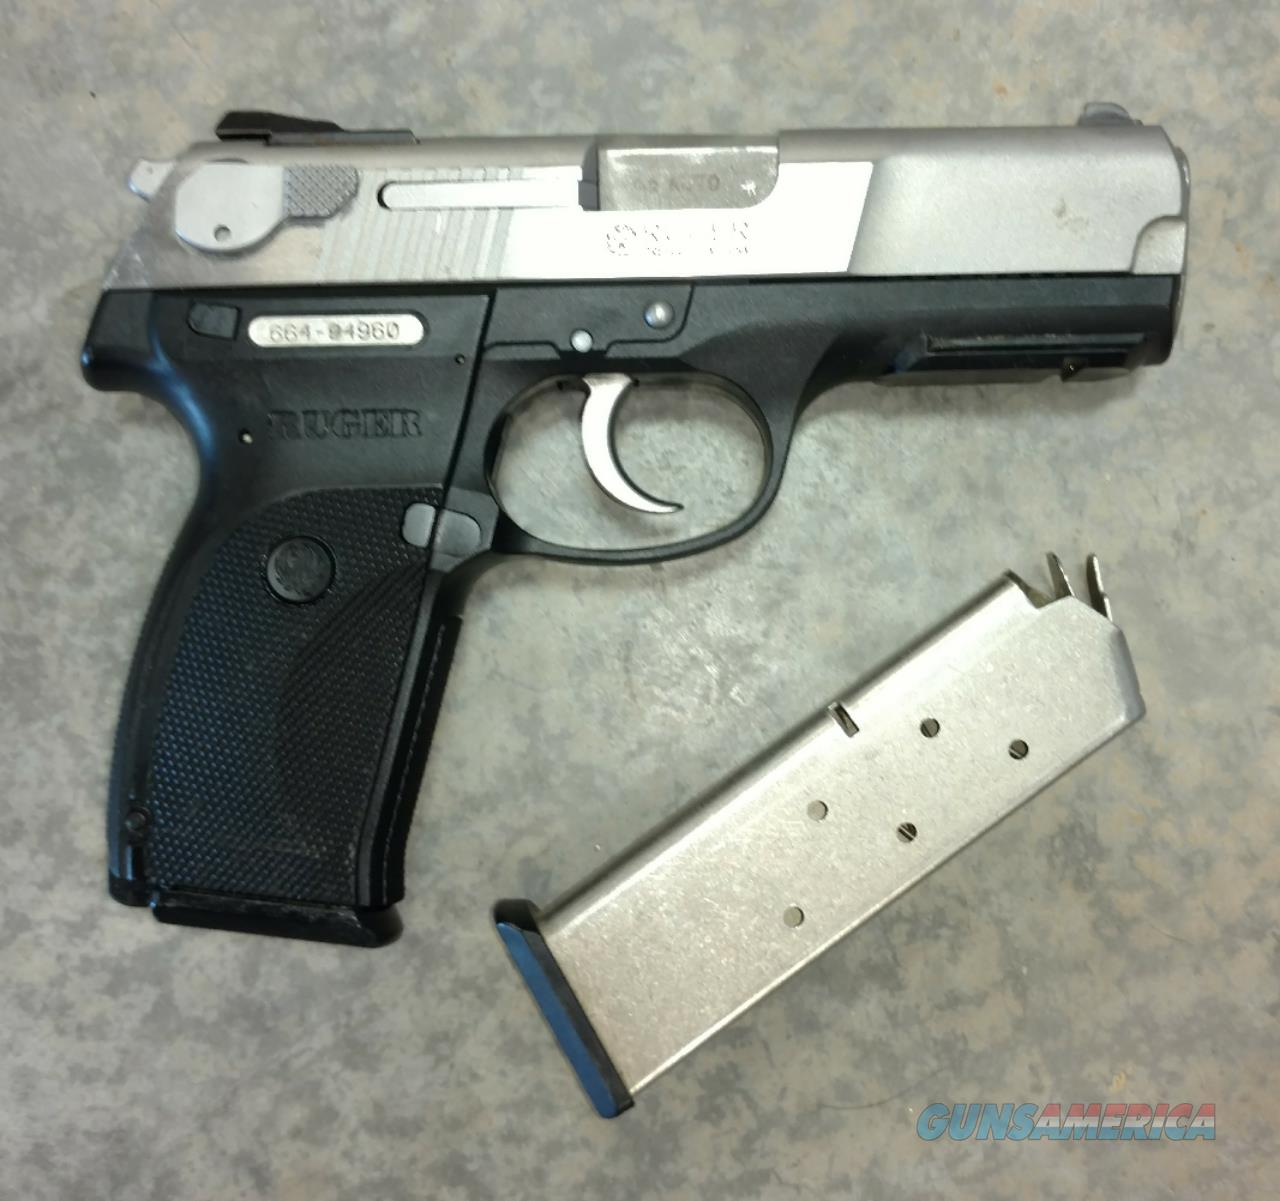 Ruger P345 SS ..45 ACP Pistol 2 mags  Guns > Pistols > Ruger Semi-Auto Pistols > P-Series